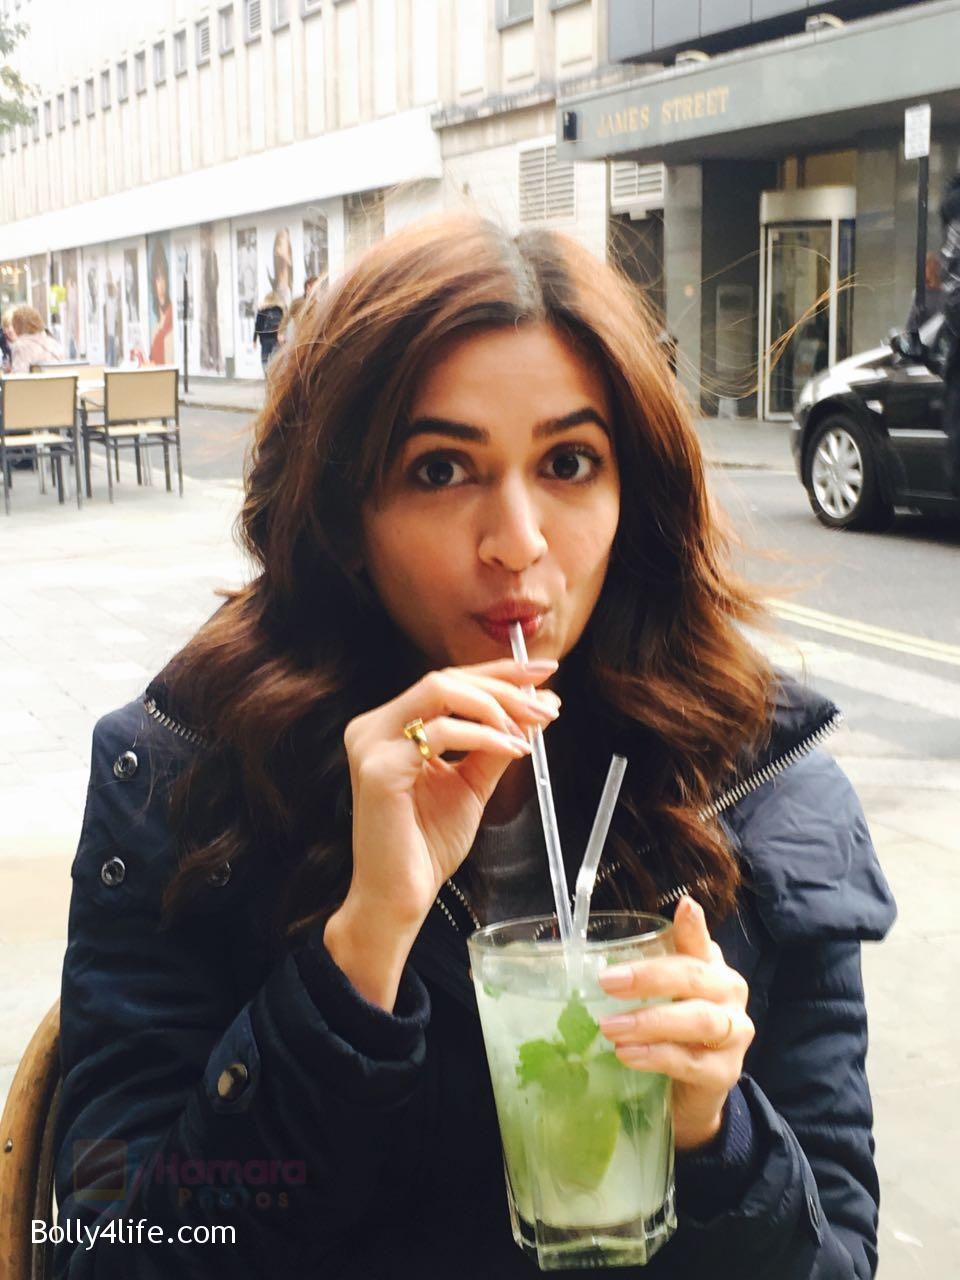 Kriti-Kharbanda-spotted-in-London-while-shooting-for-Atithii-in-London-on-26th-Oct-2016-2.jpg